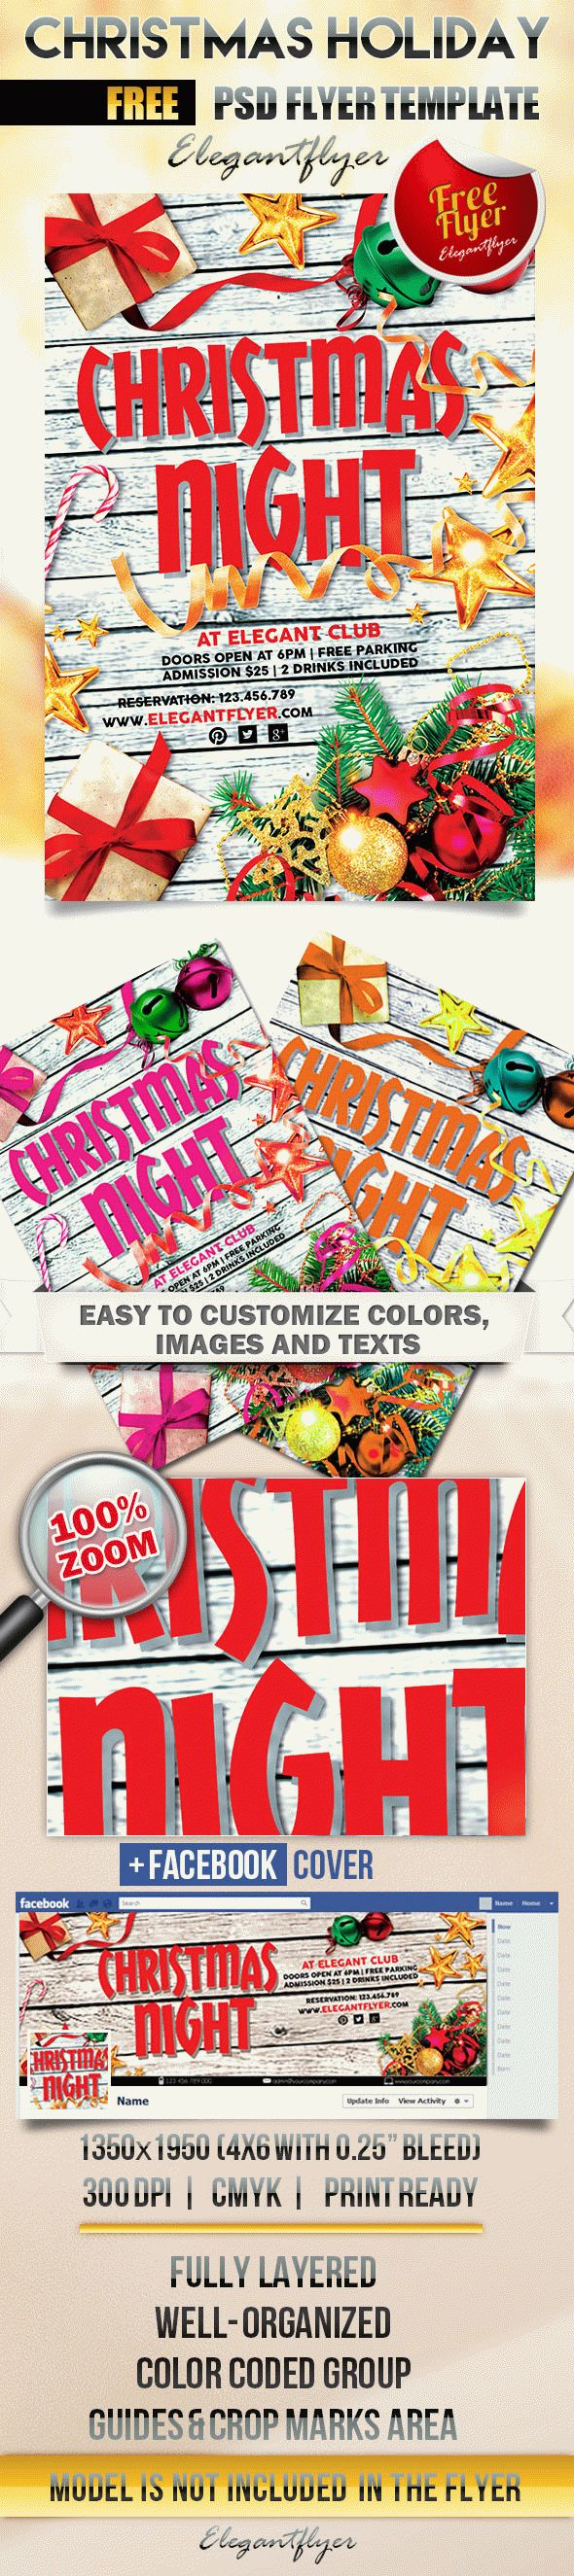 Christmas Holiday – Free Flyer PSD Template